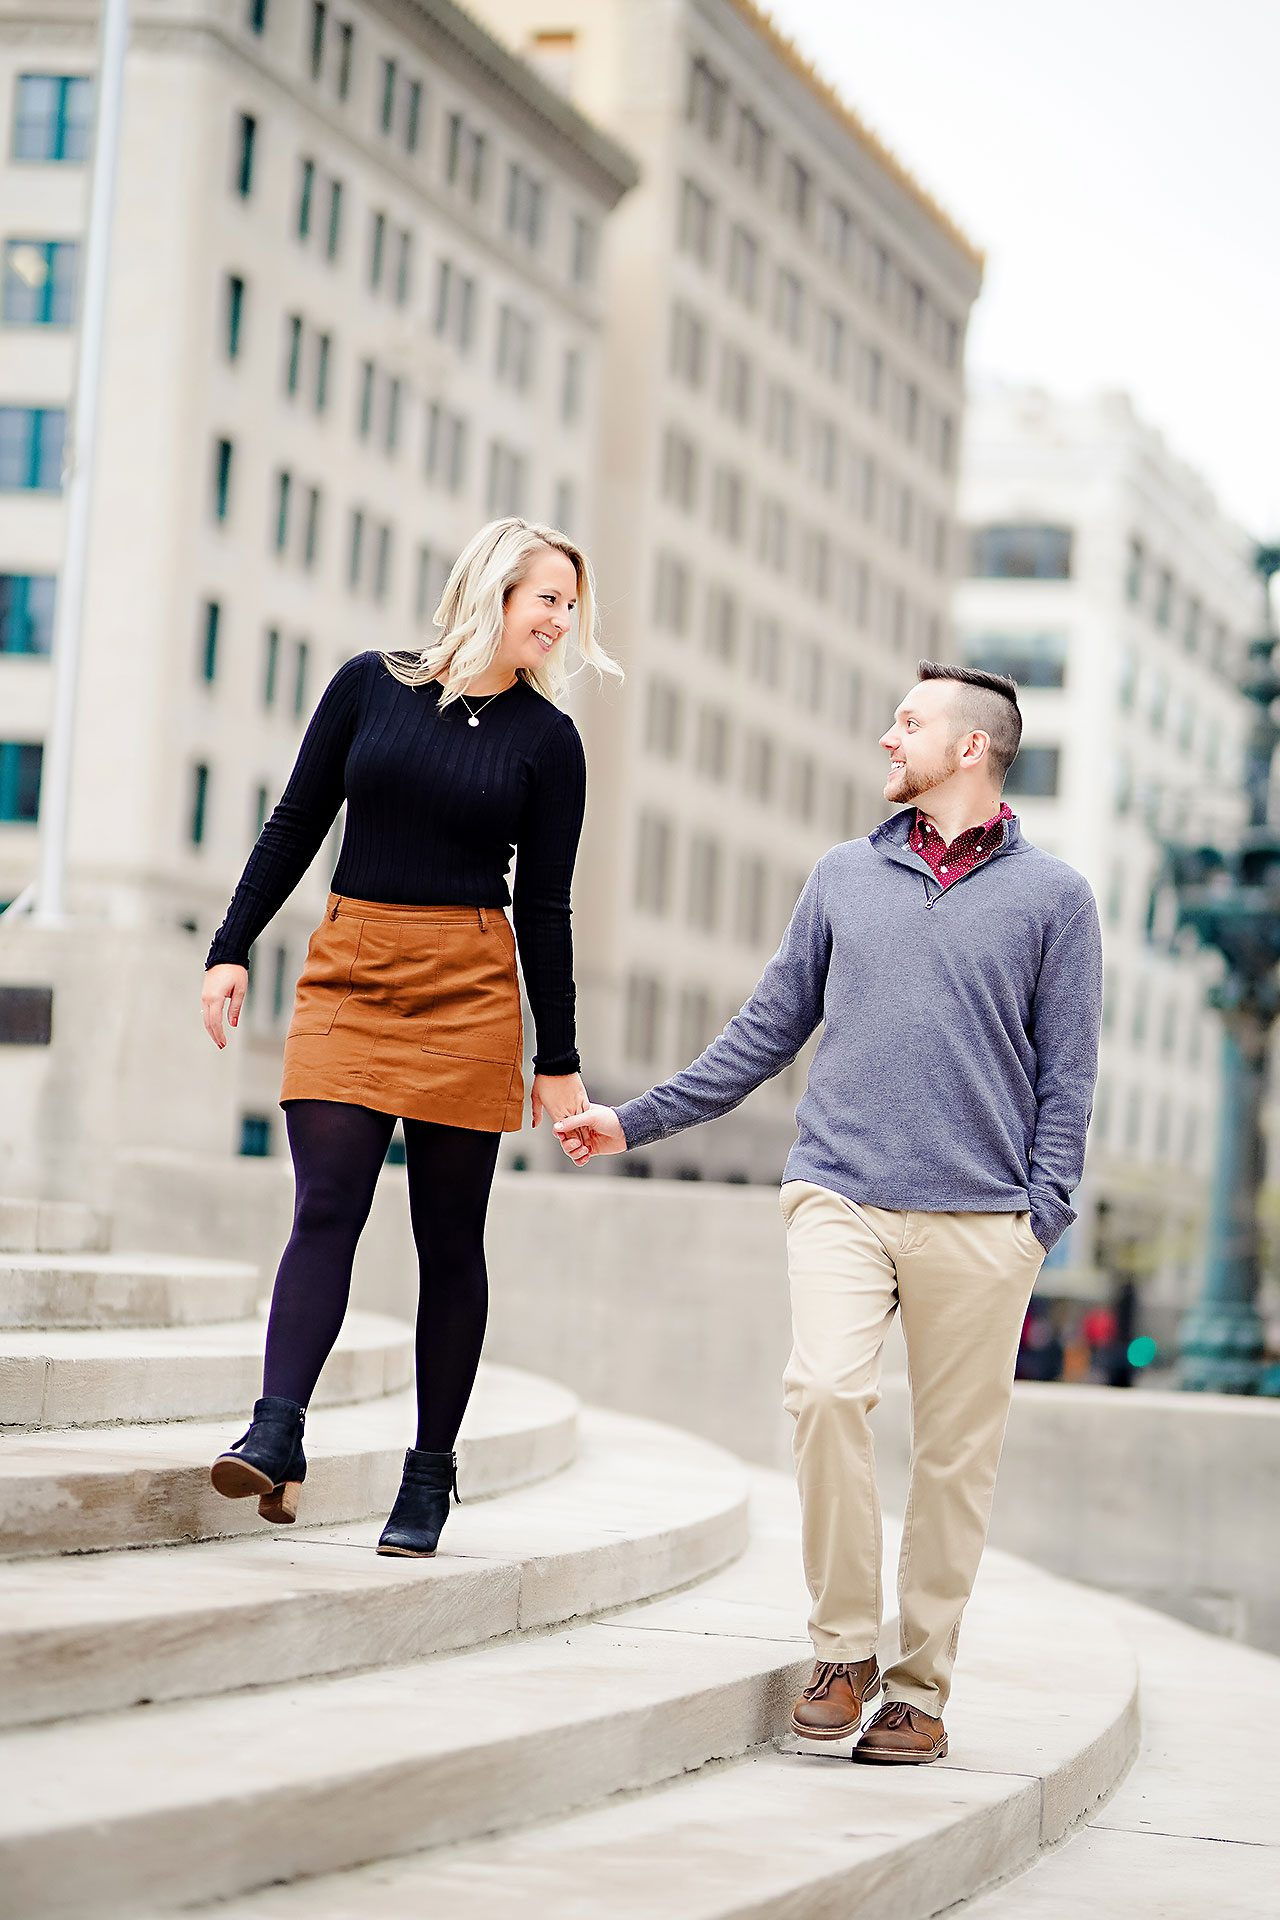 Kristen Jonny Indianapolis Downtown Engagement Session 104